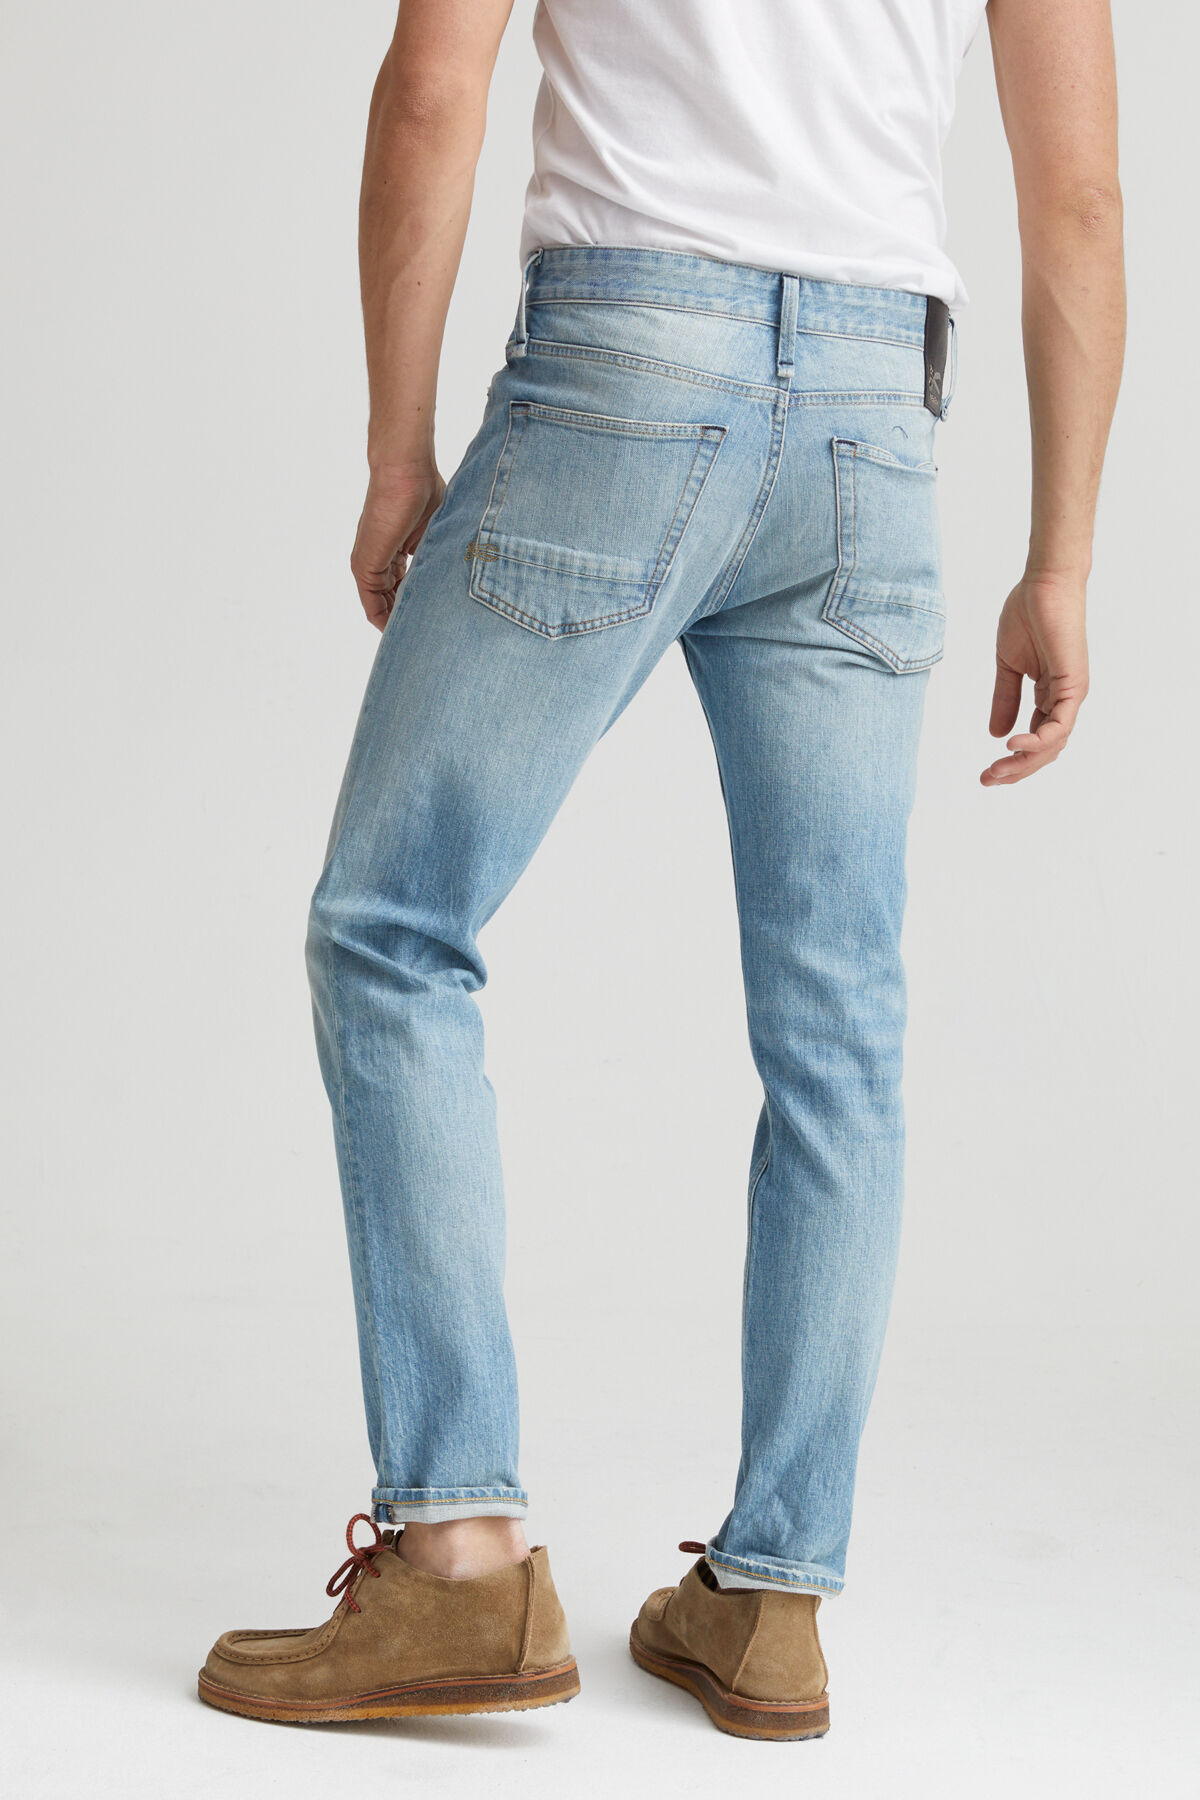 RAZOR Organic Cotton Denim - Slim Fit